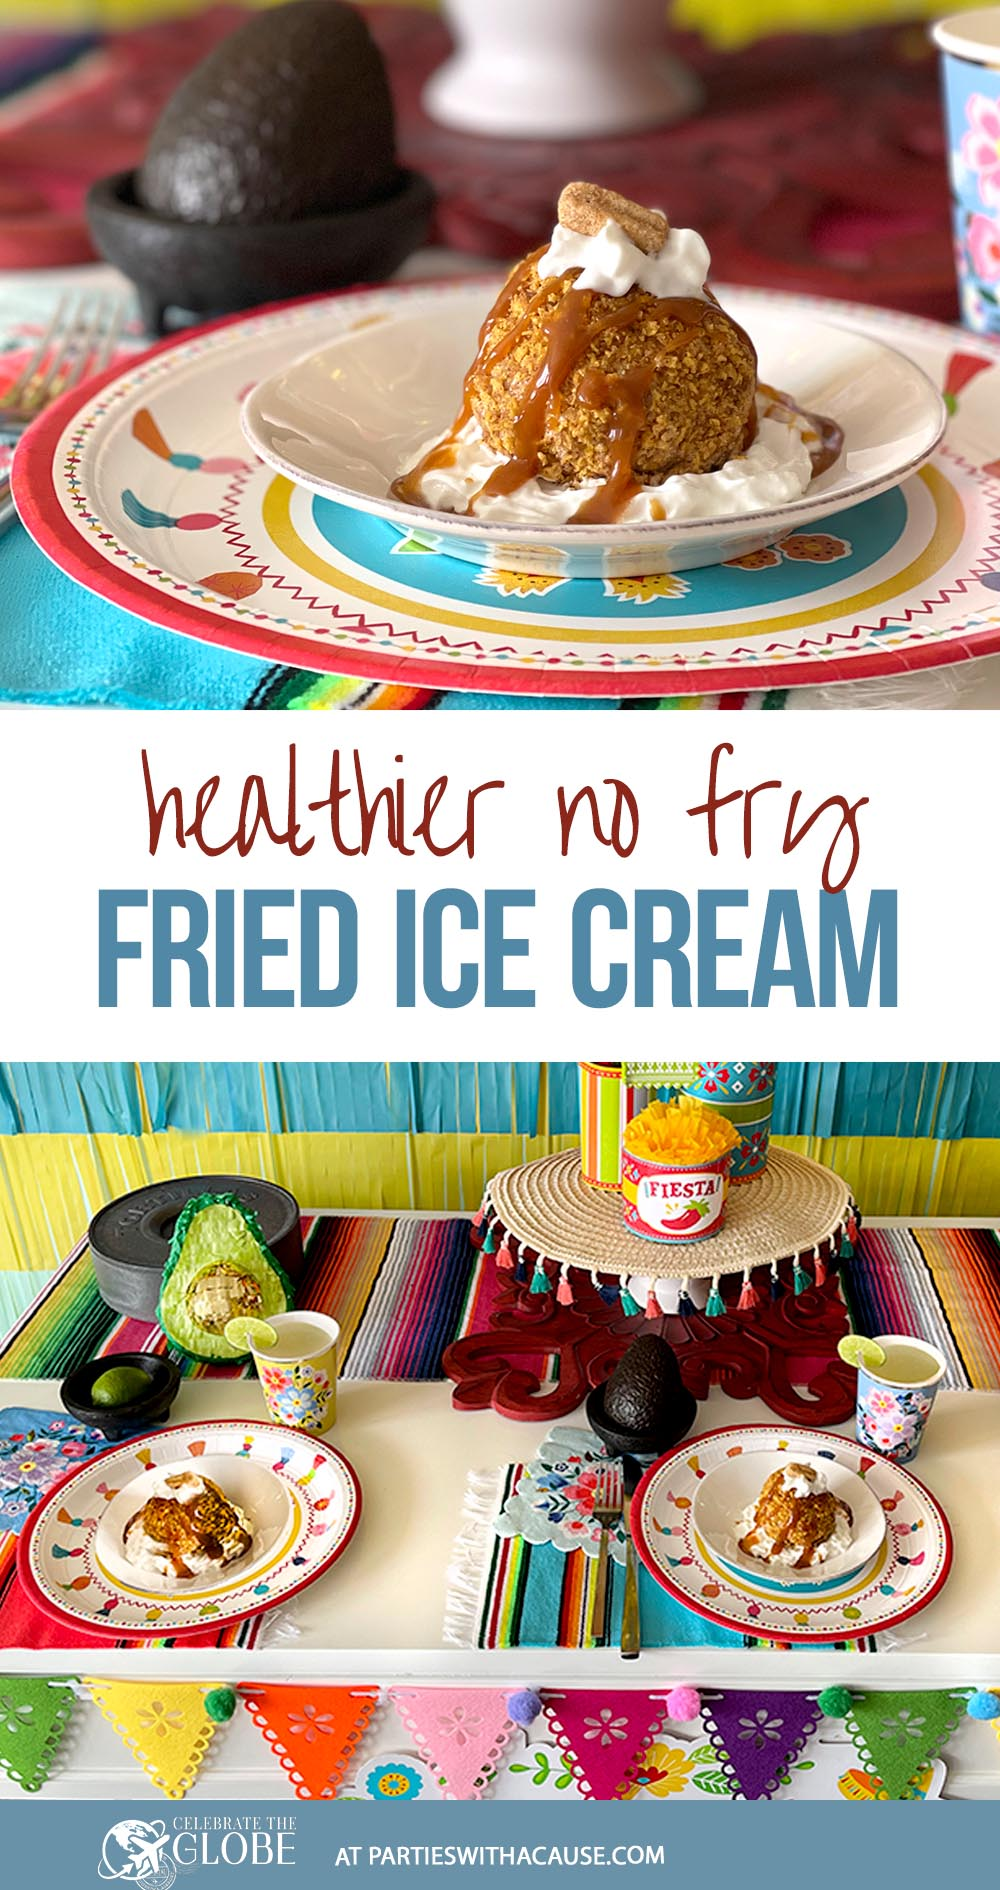 Recipe for fried ice cream without the oil!